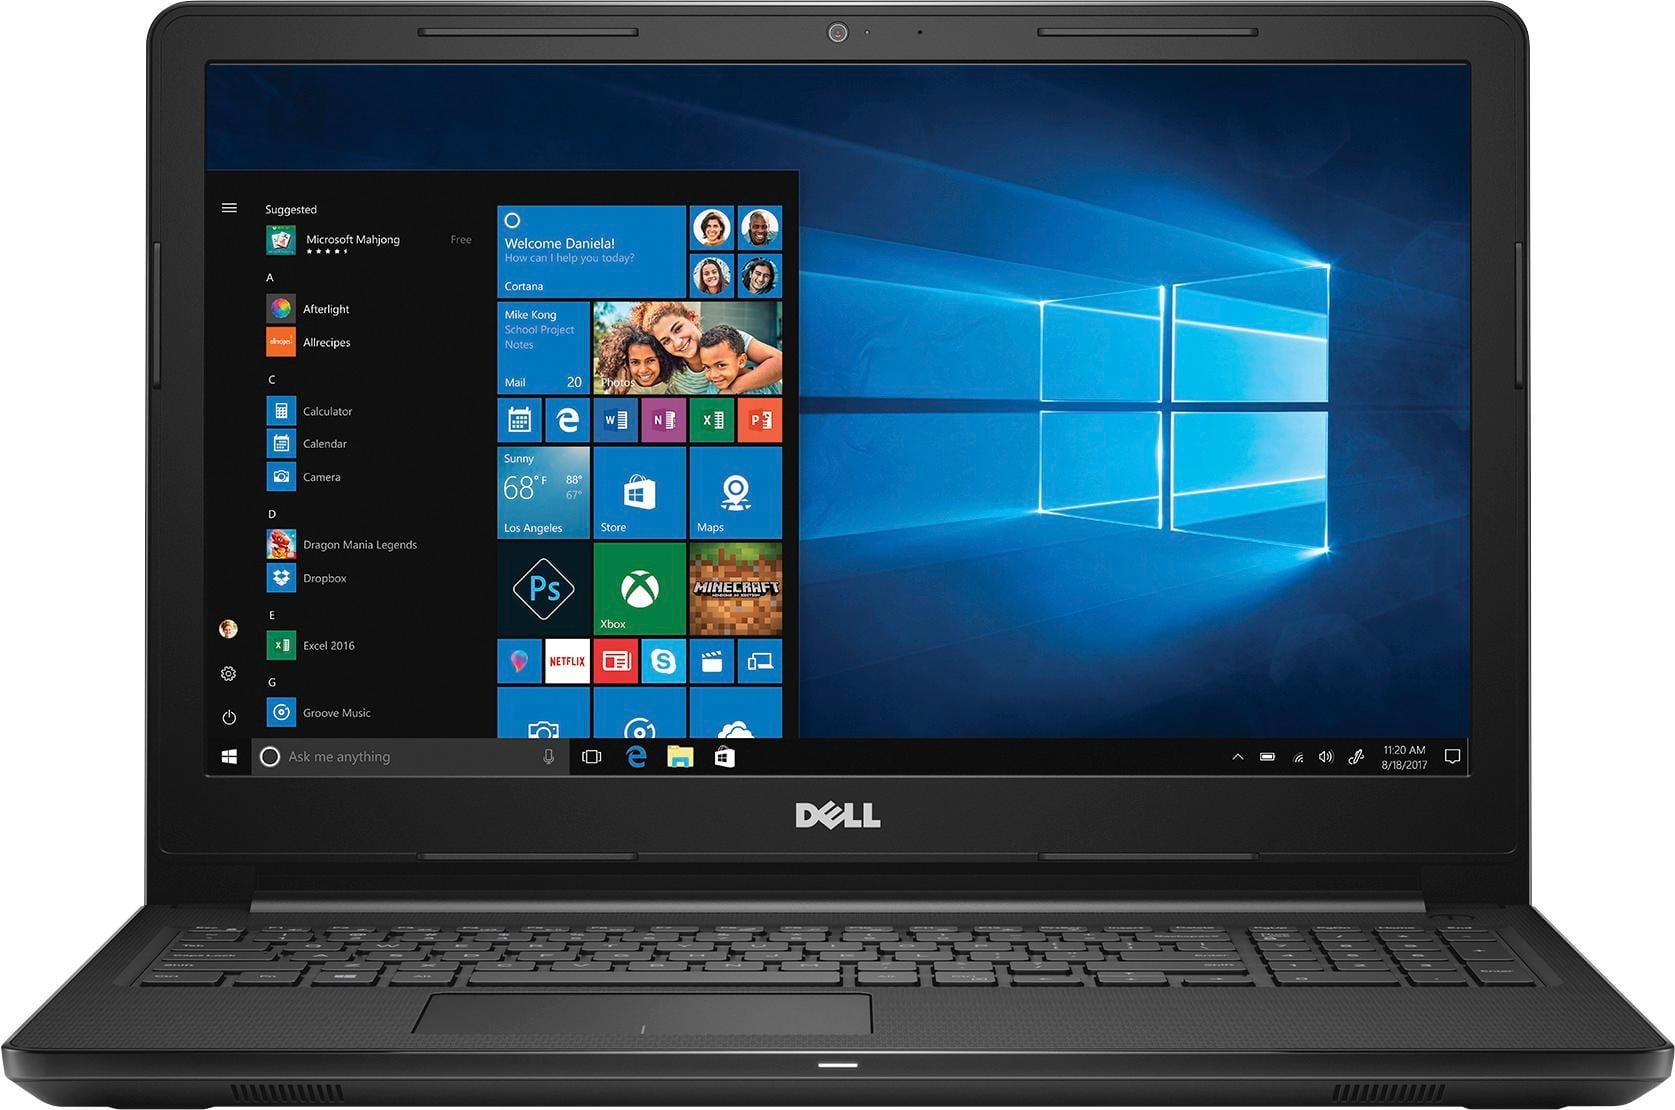 "Dell - Inspiron 15.6"" Touch Laptop Core i3 - 6GB Memory - 1TB Hard Drive $299.99 early access"